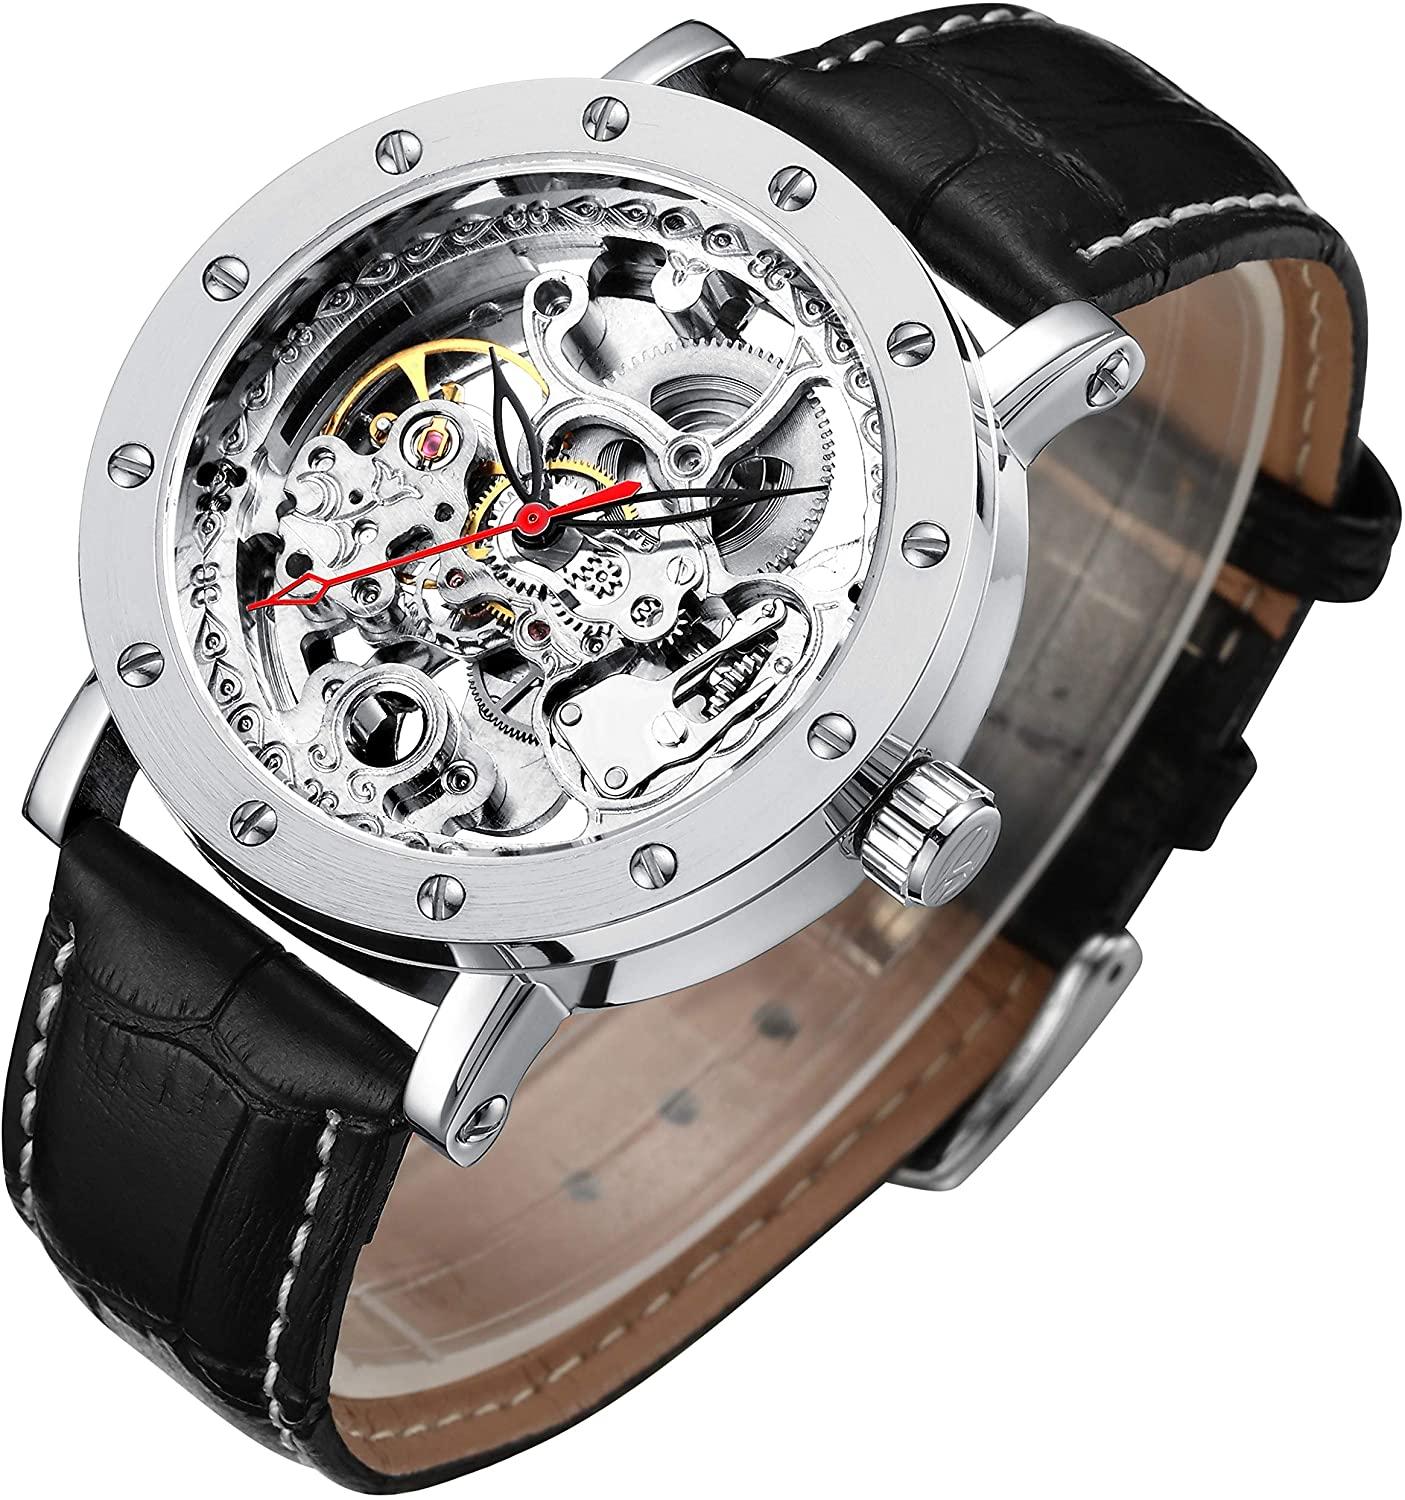 IK Colouring Mechanical Stainless Steel Skeleton Watch